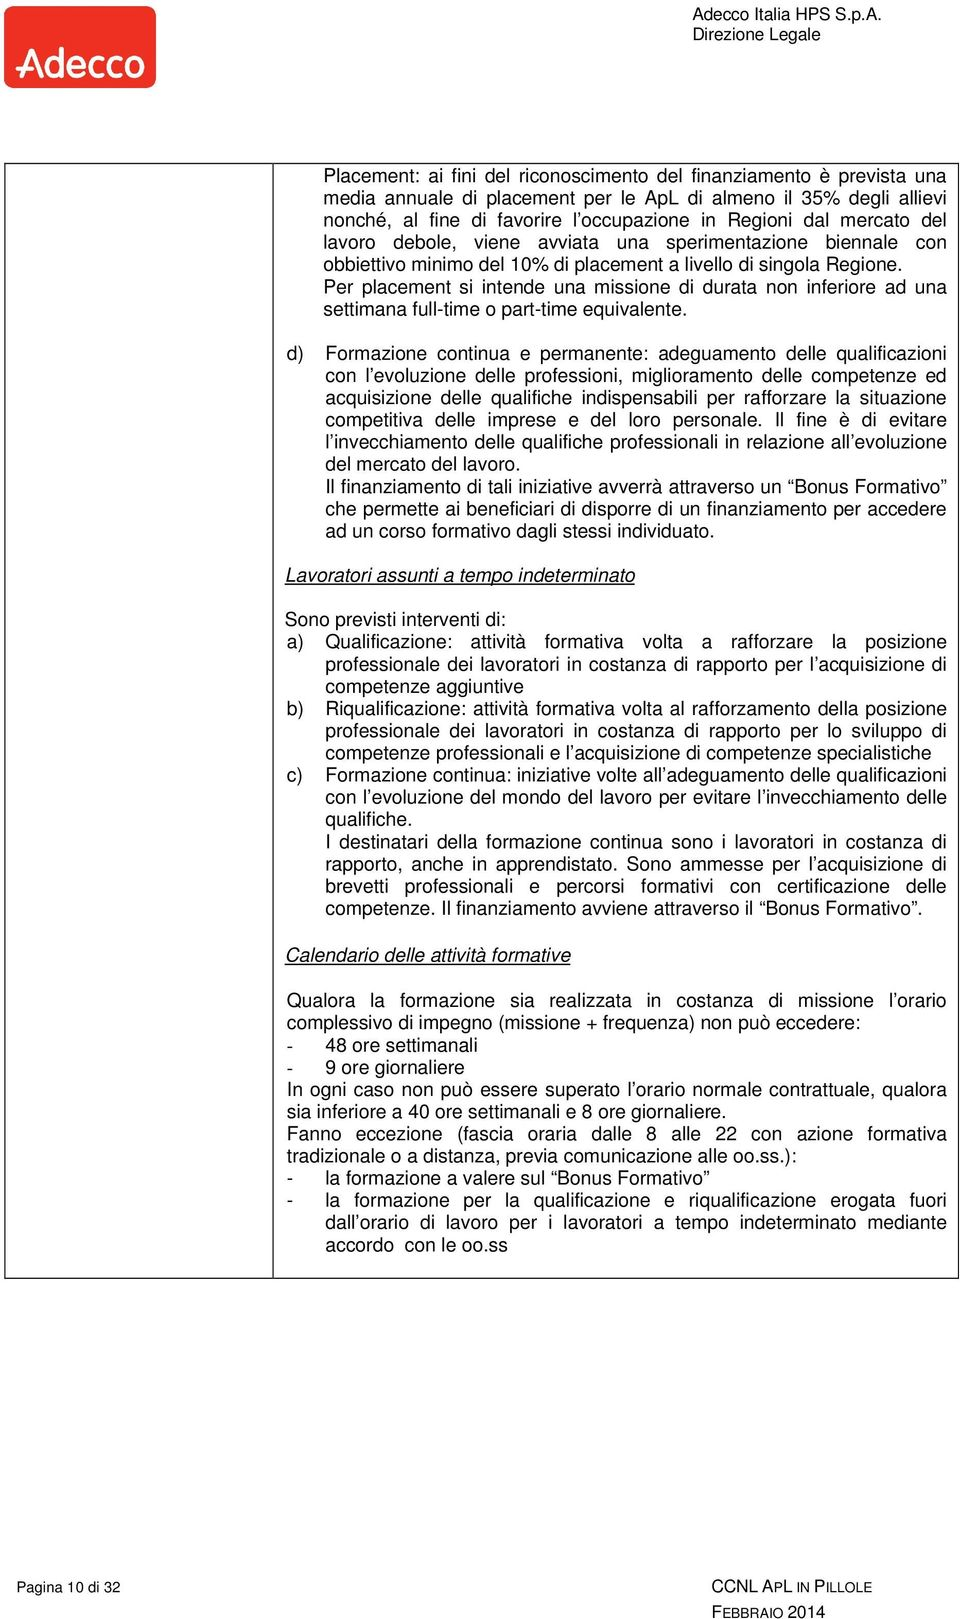 Per placement si intende una missione di durata non inferiore ad una settimana full-time o part-time equivalente.